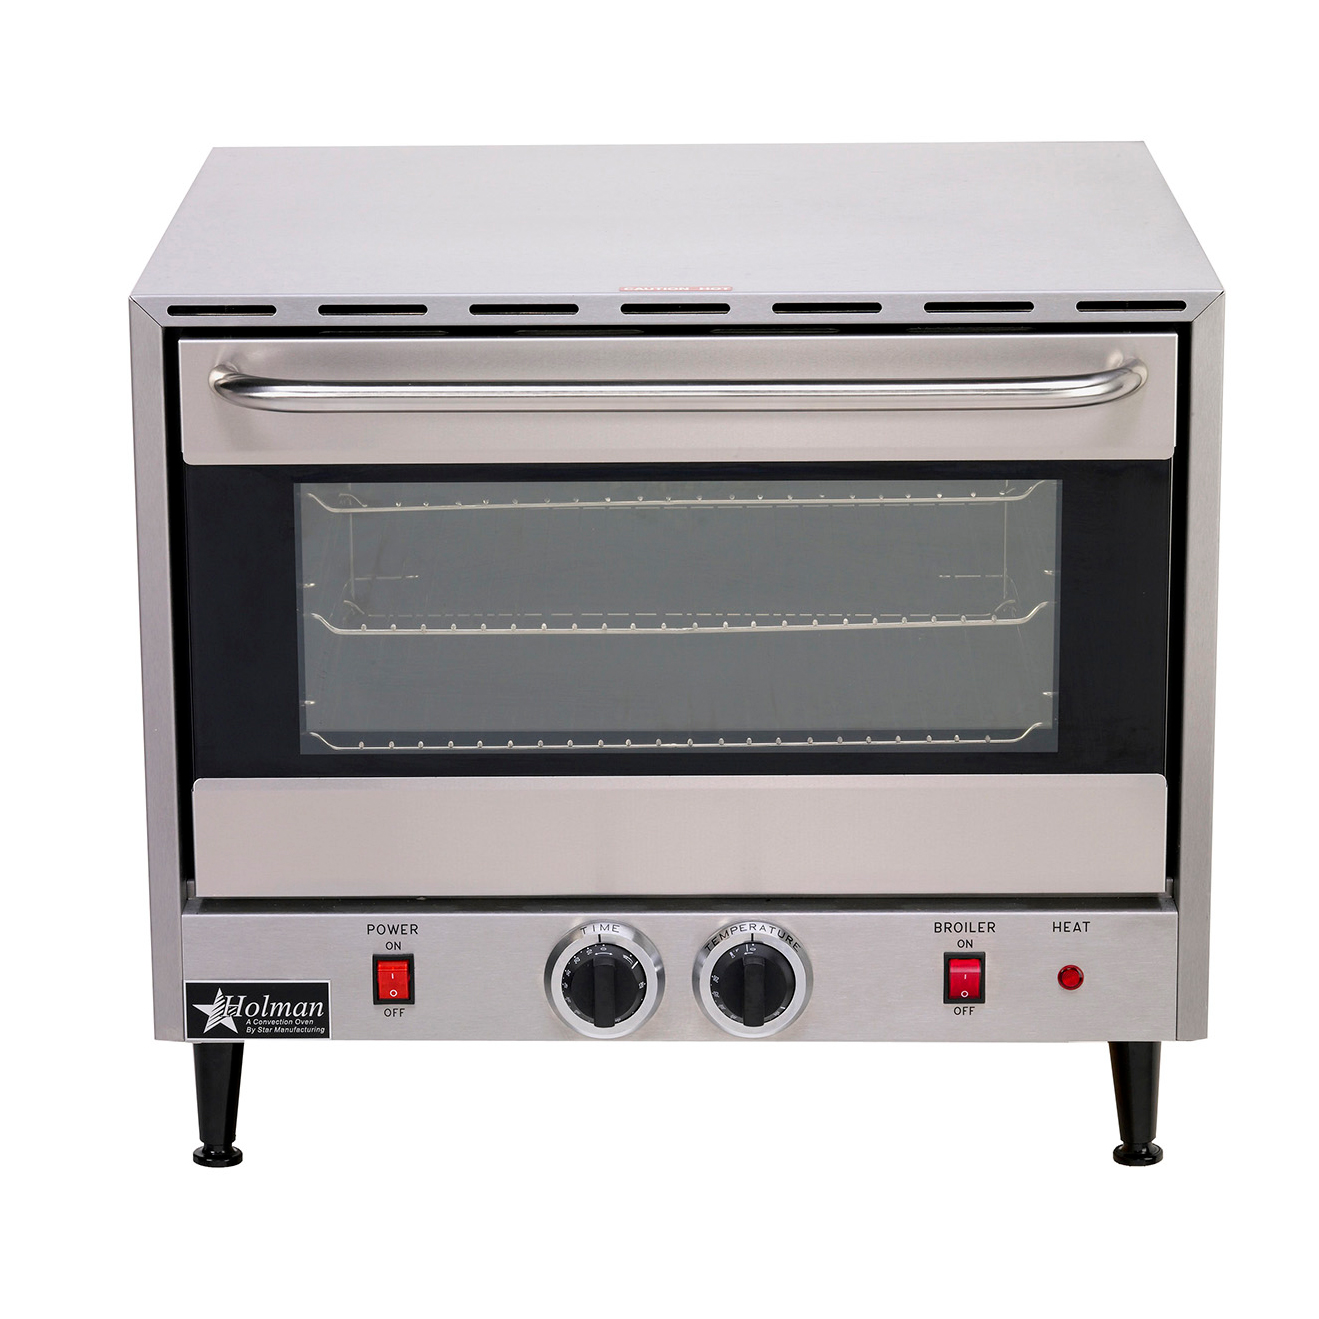 Star CCOH-3 convection oven, electric